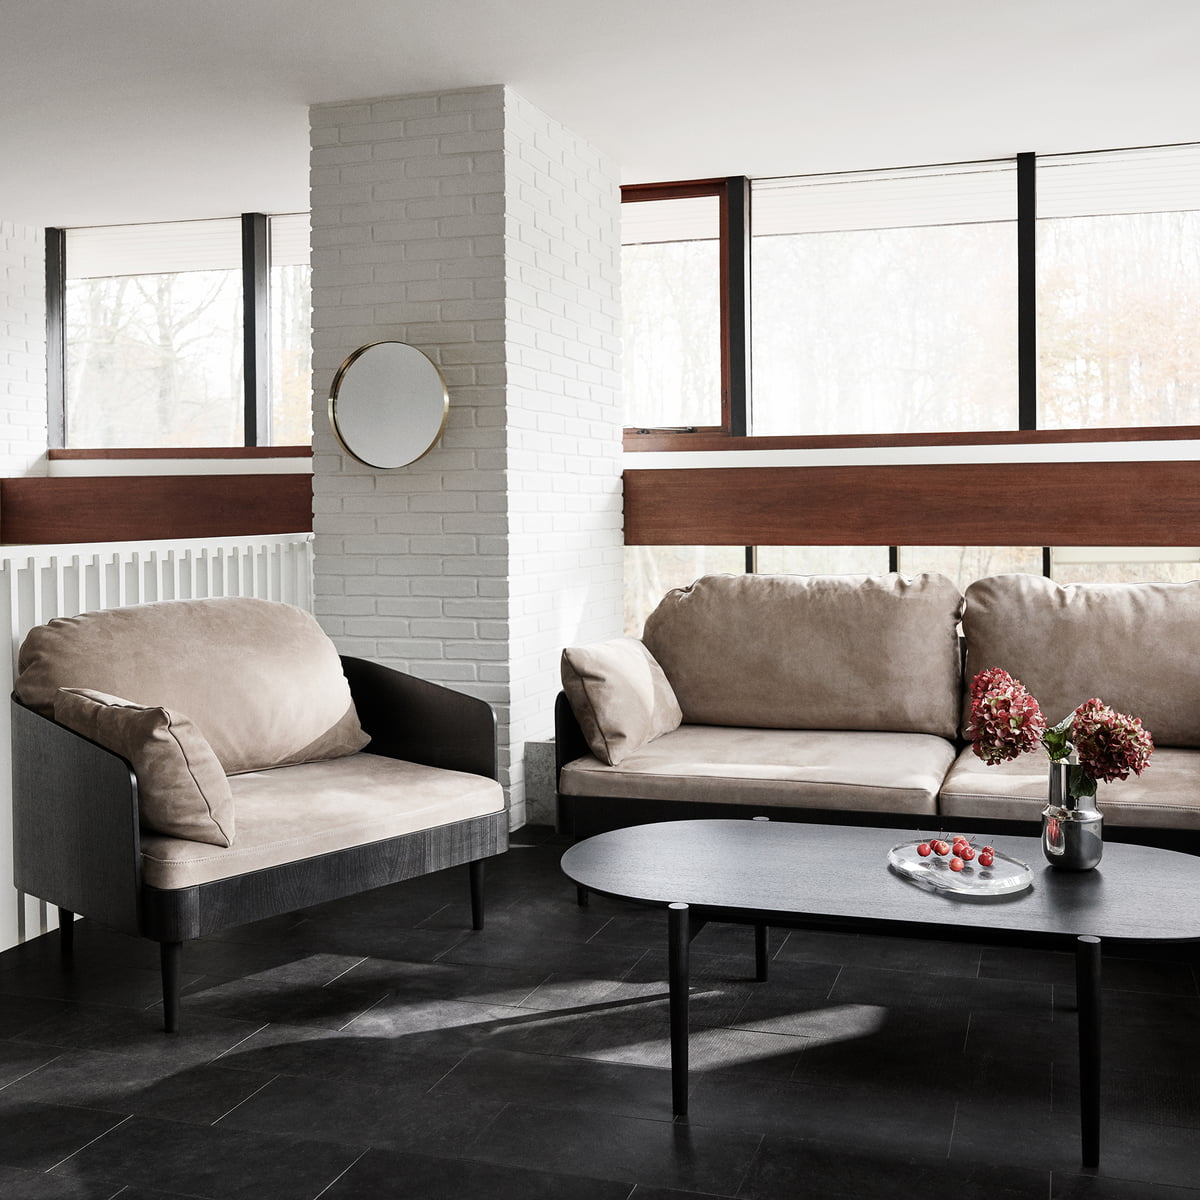 Brilliant Sofa Und Sessel Ideen Von Comfortable By Menu For Your Home